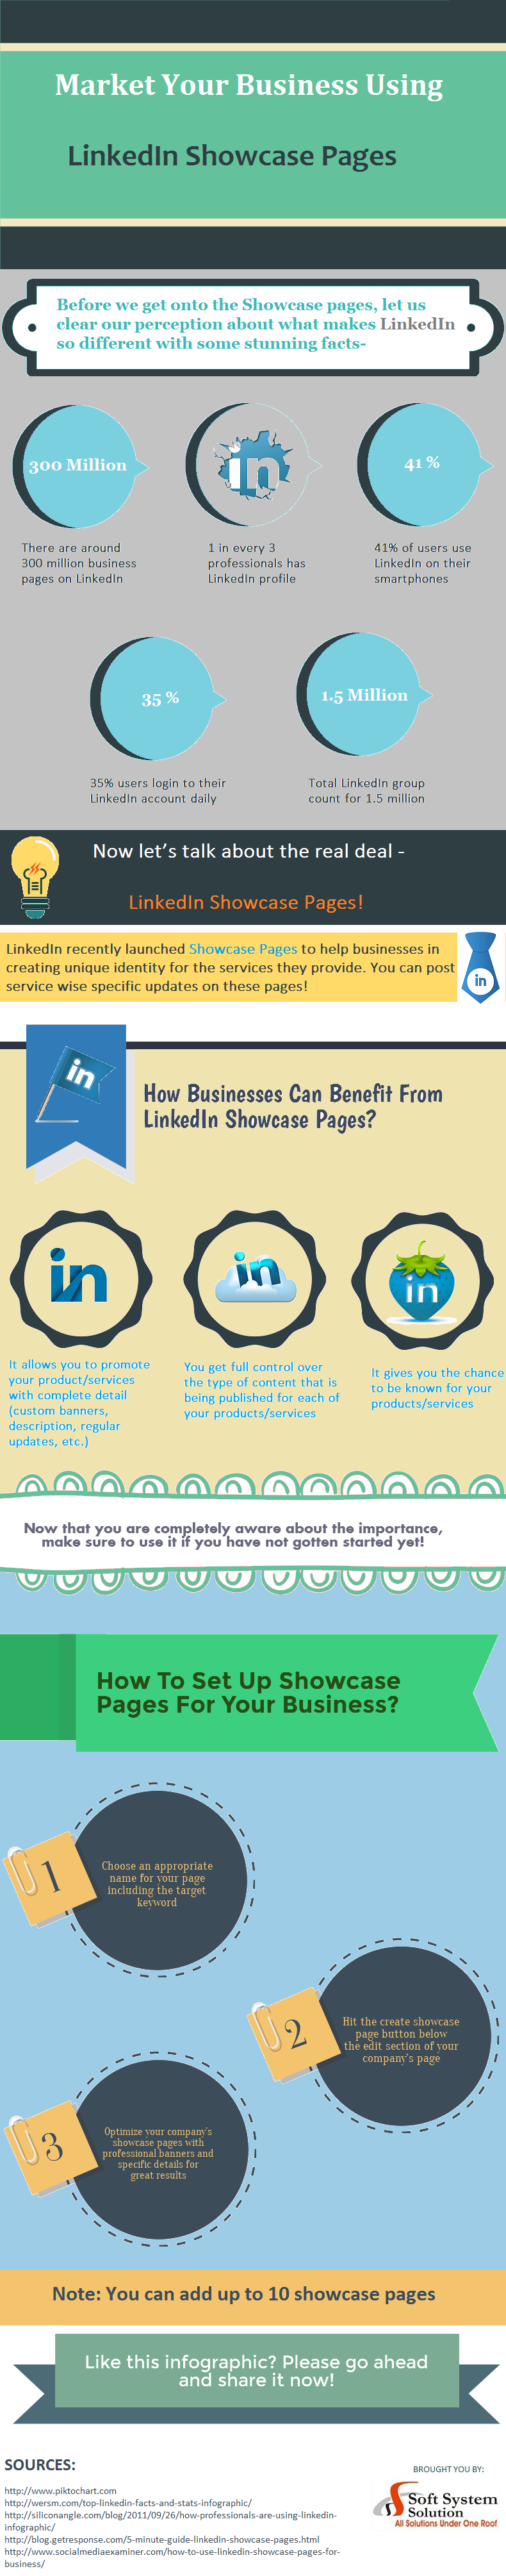 Market Your Business Using LinkedIn Showcase Pages